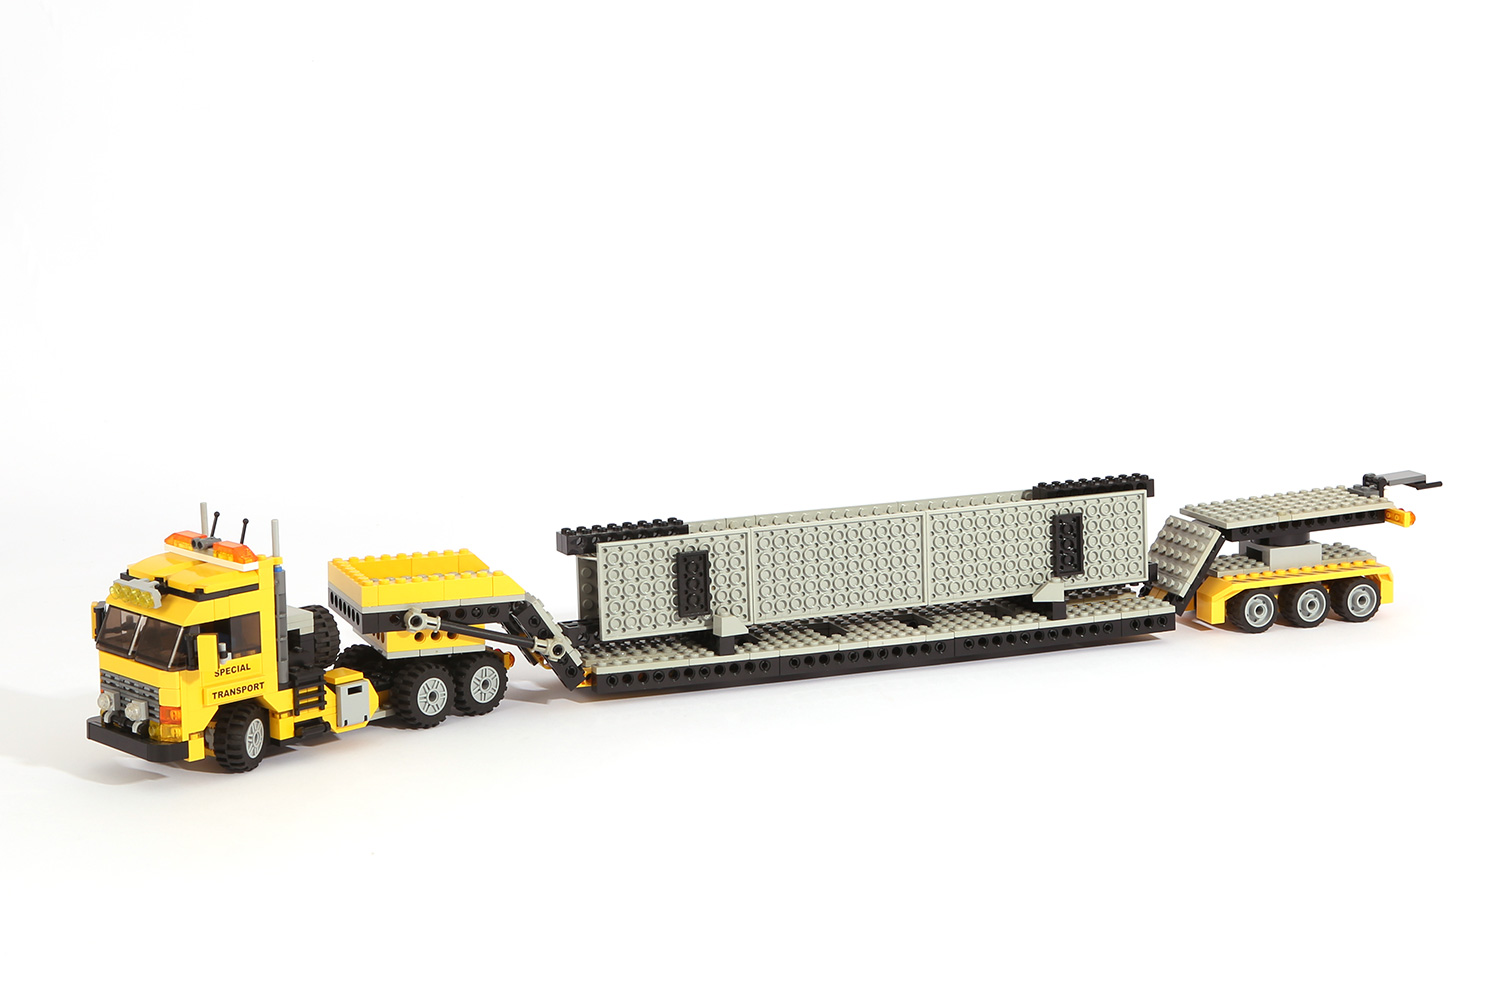 Schwertransporter – Original LEGO Set 7900